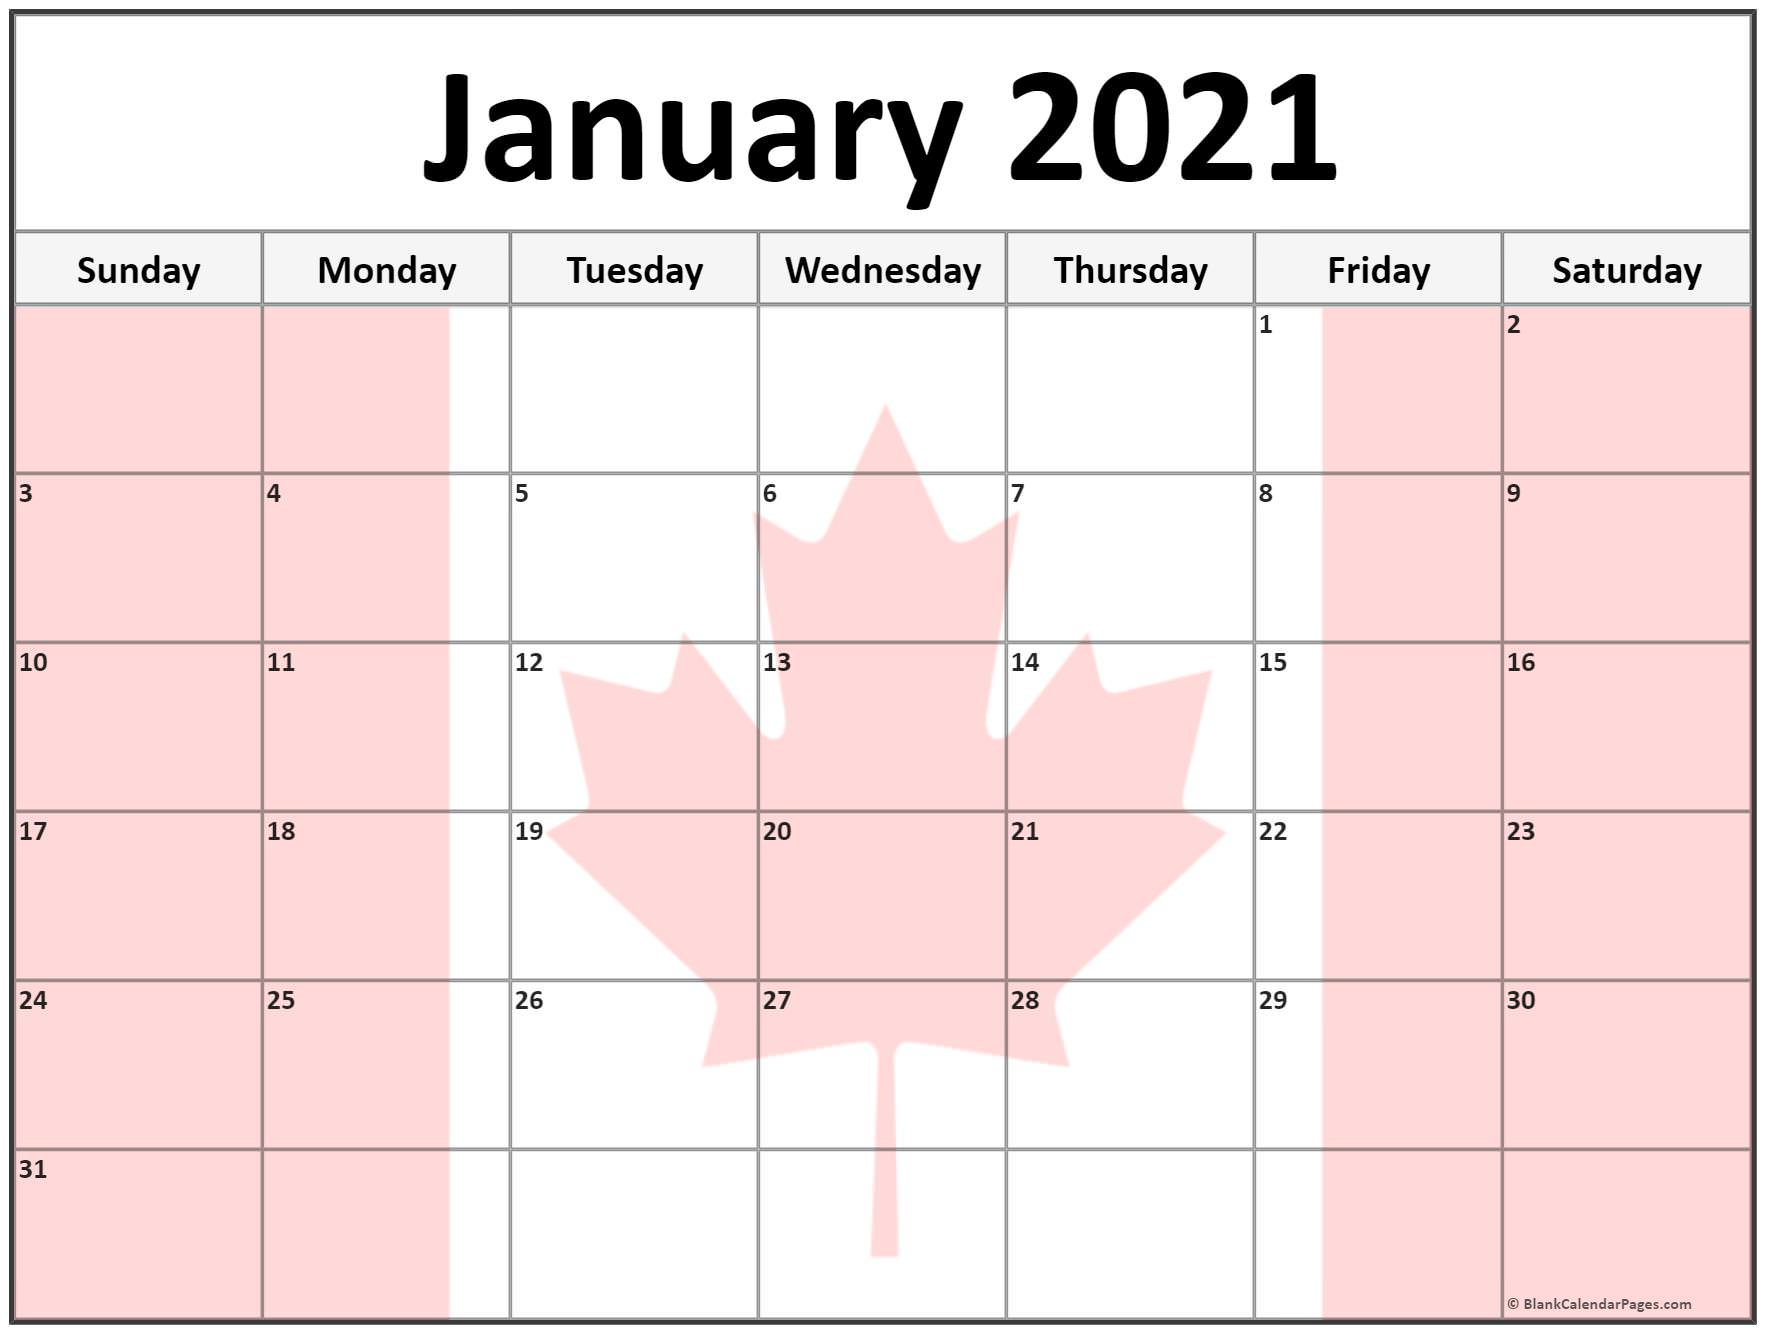 Collection Of January 2021 Photo Calendars With Image Filters